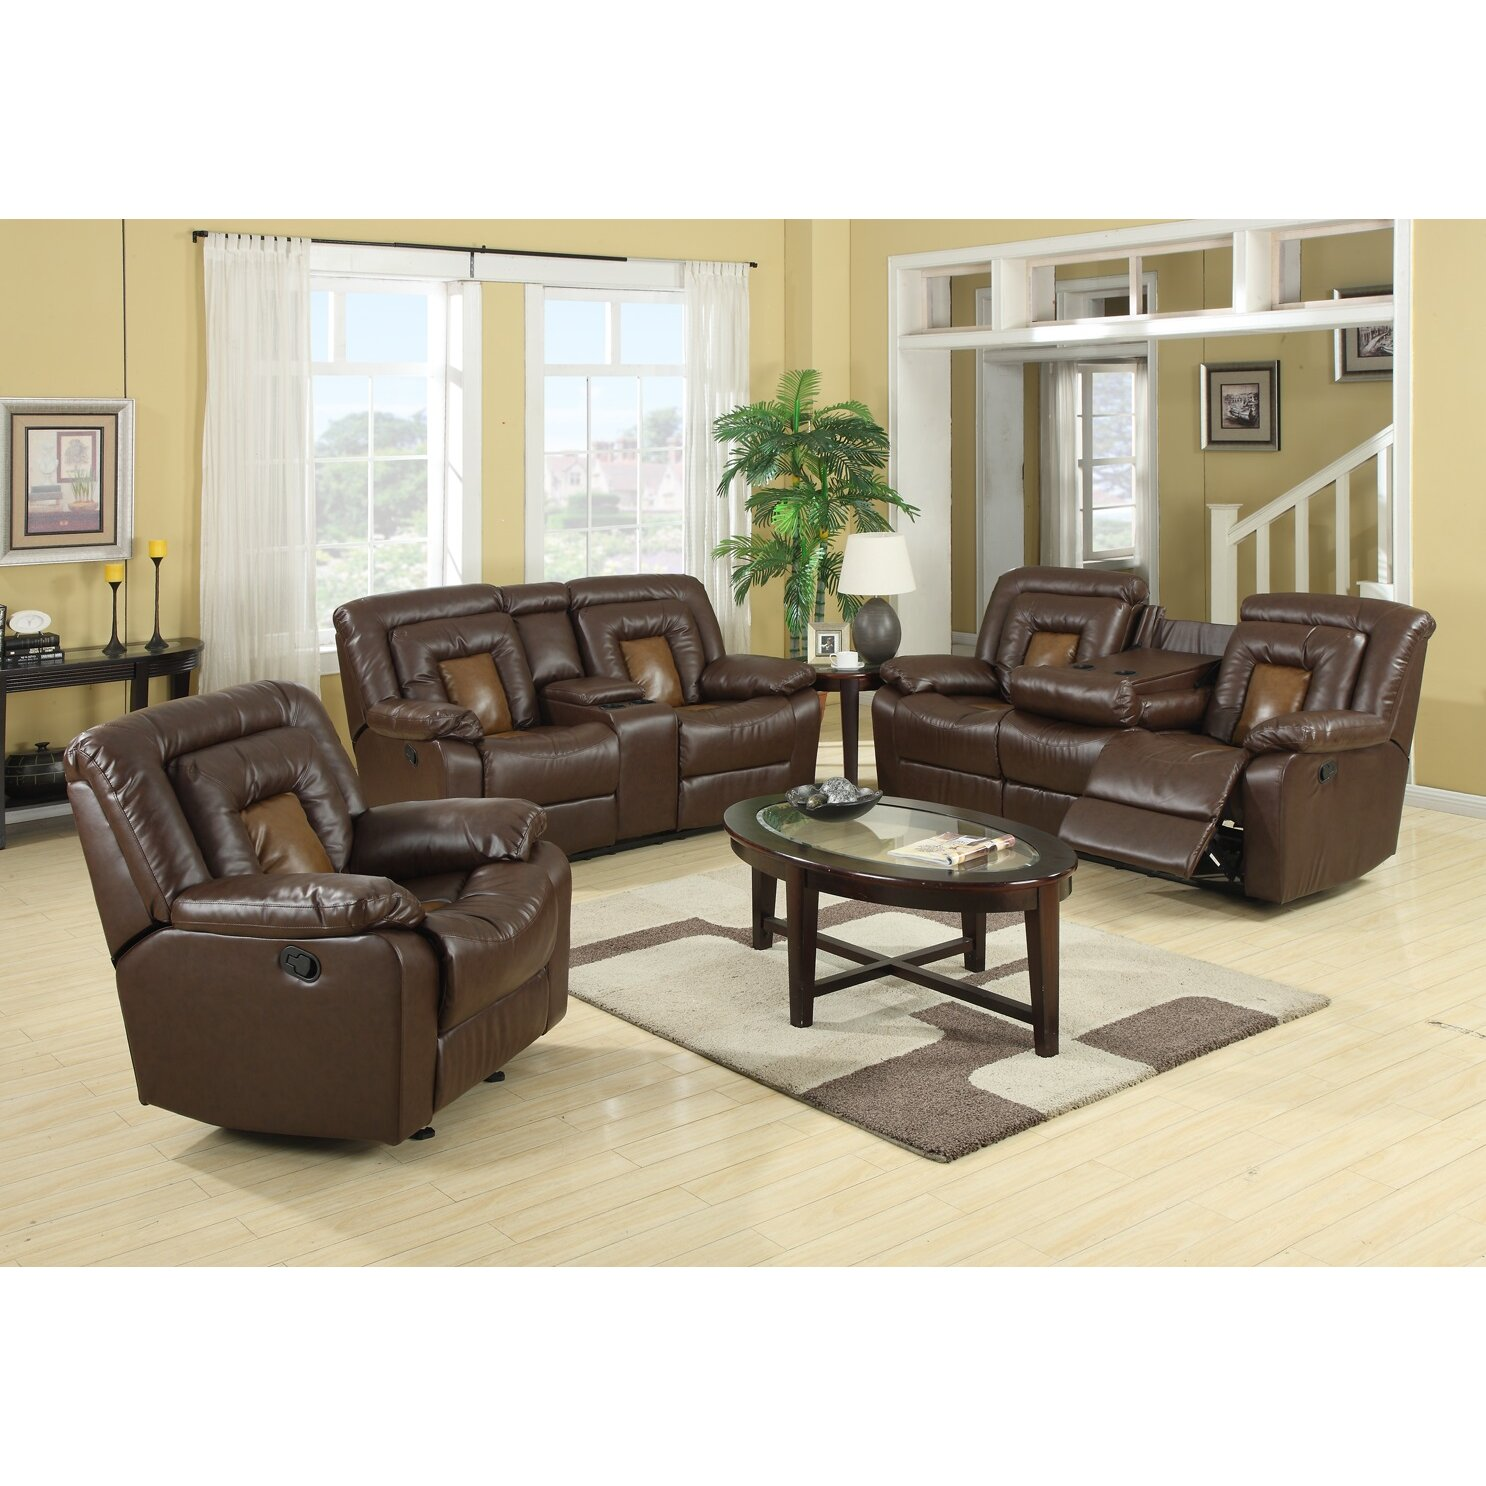 Reclining Living Room Furniture Sets Roundhill Furniture Kmax 2 Piece Reclining Sofa And Loveseat Set